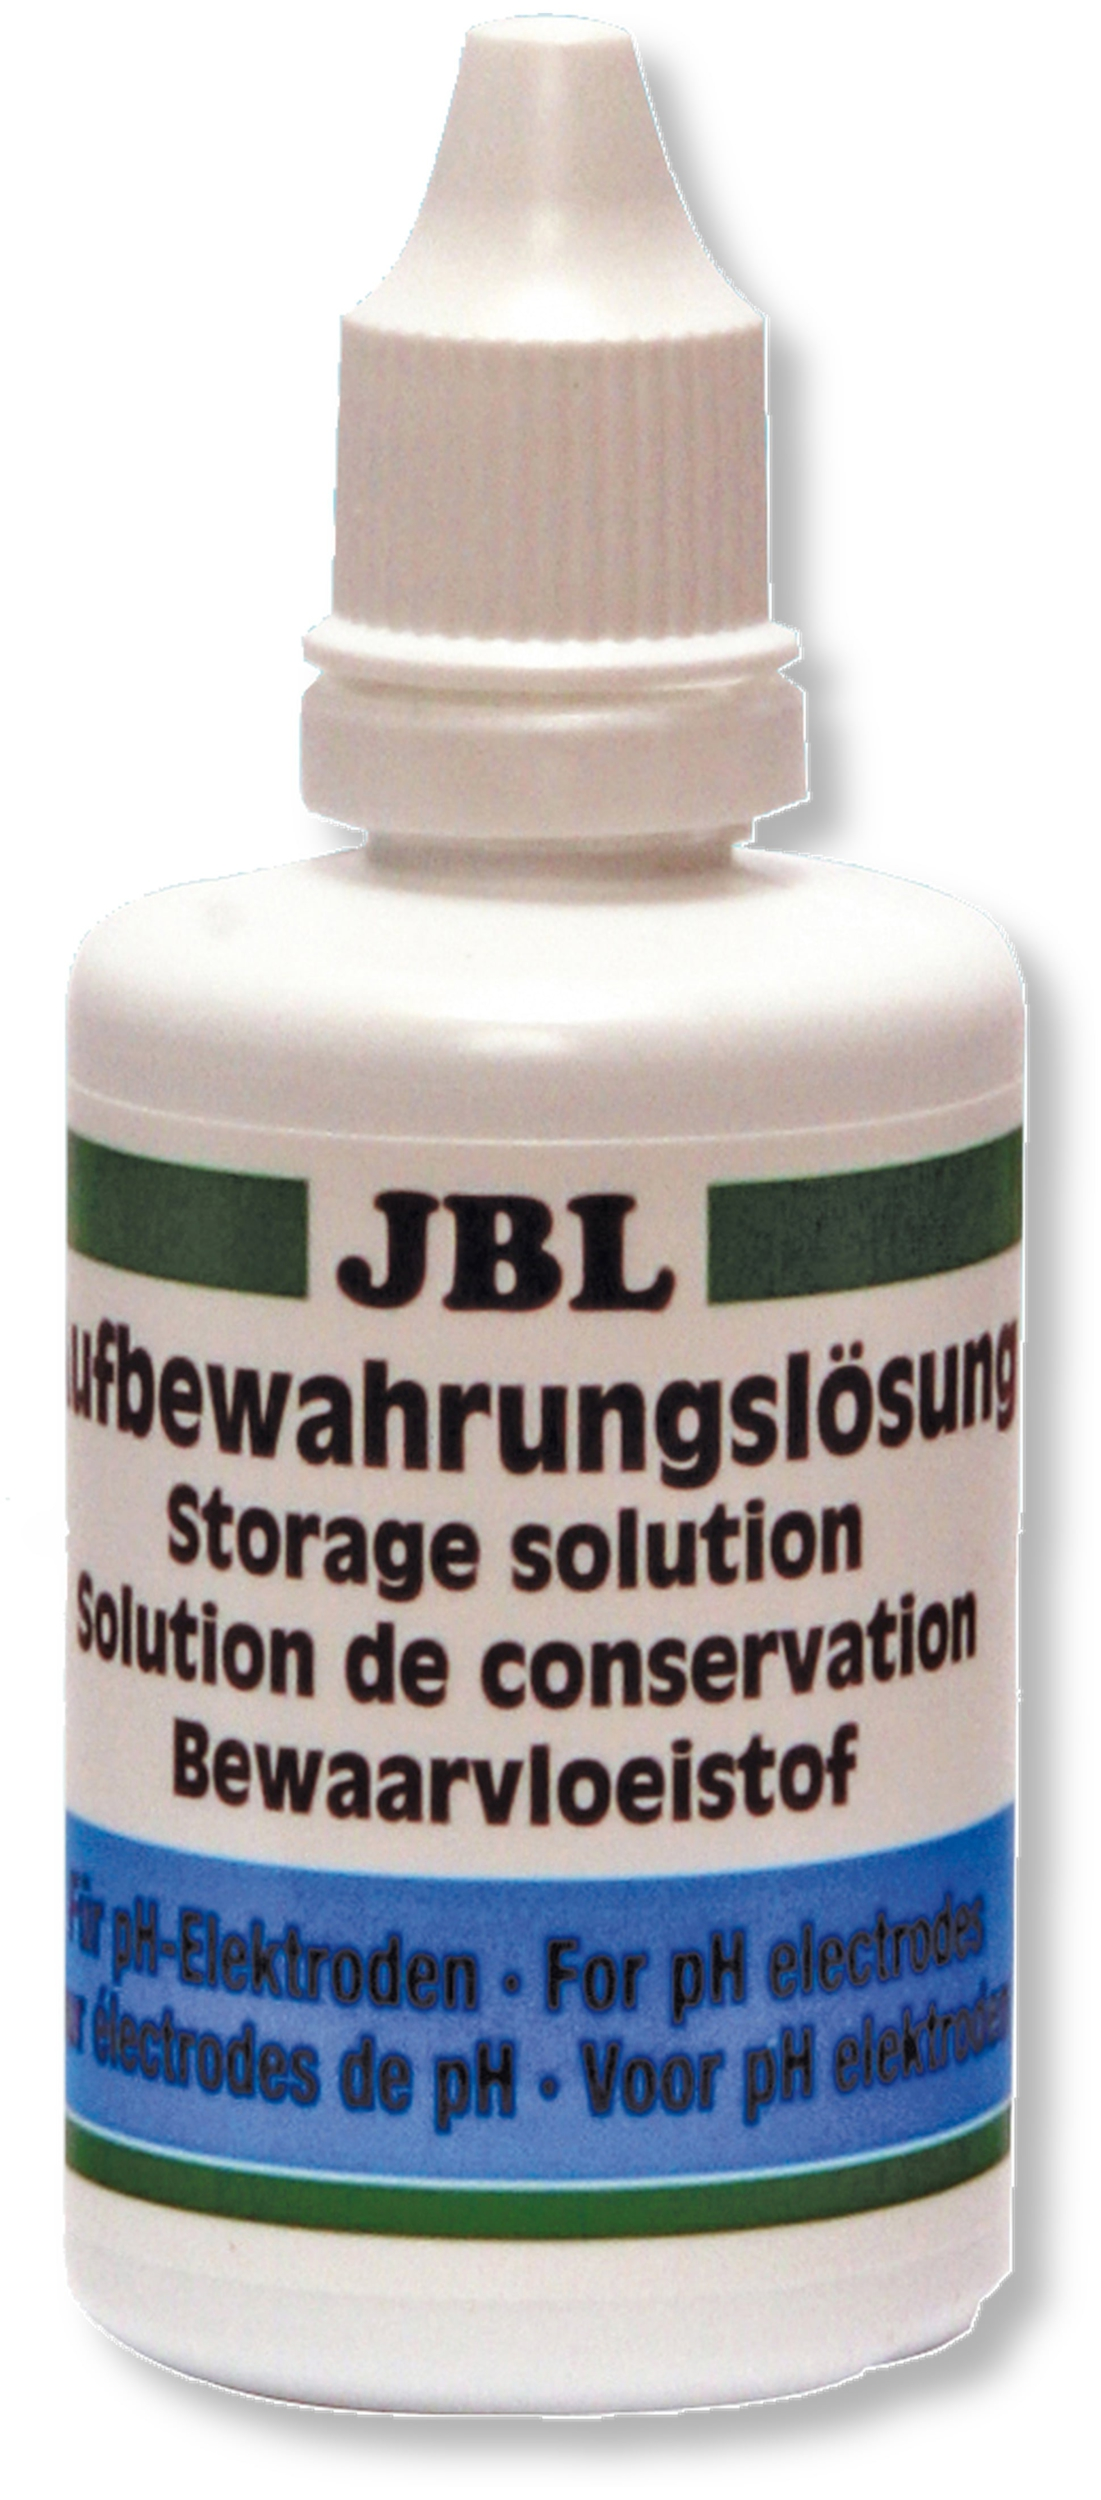 jbl-solution-de-conservation-50-ml-durable-ou-provisoire-pour-electrodes-a-ph-min